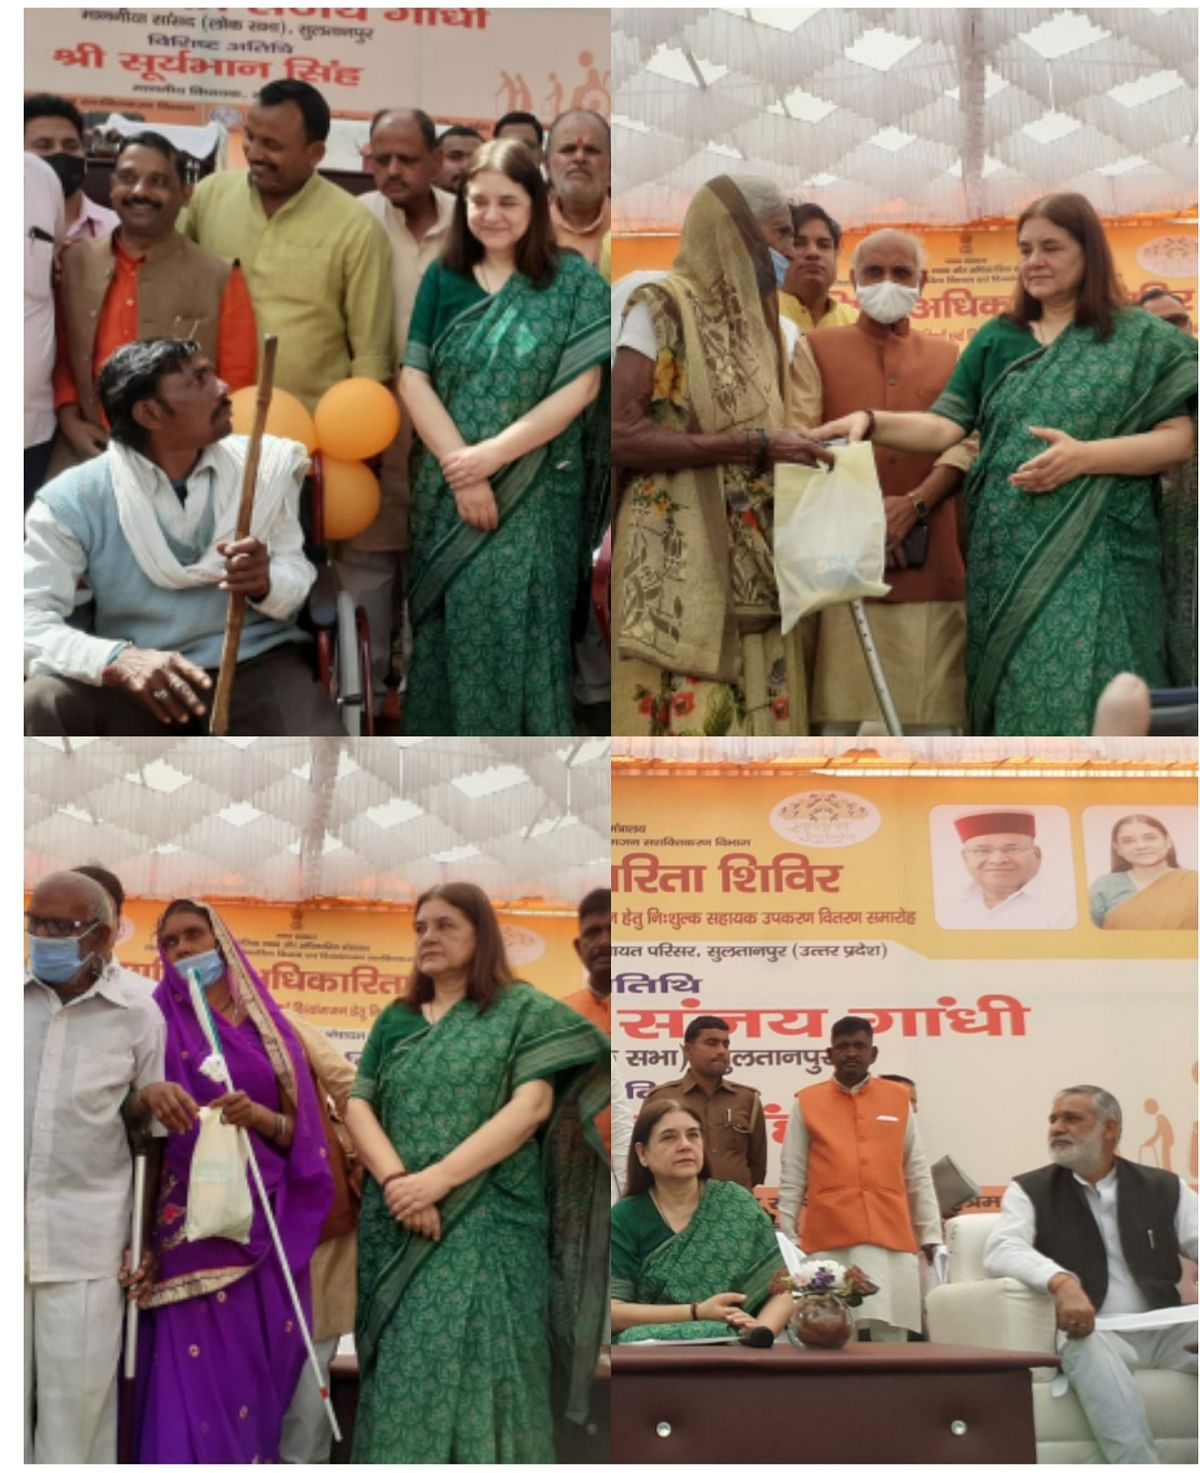 first-hospital-for-differently-abled-in-atal-government-opened-in-pilibhit-maneka-gandhi